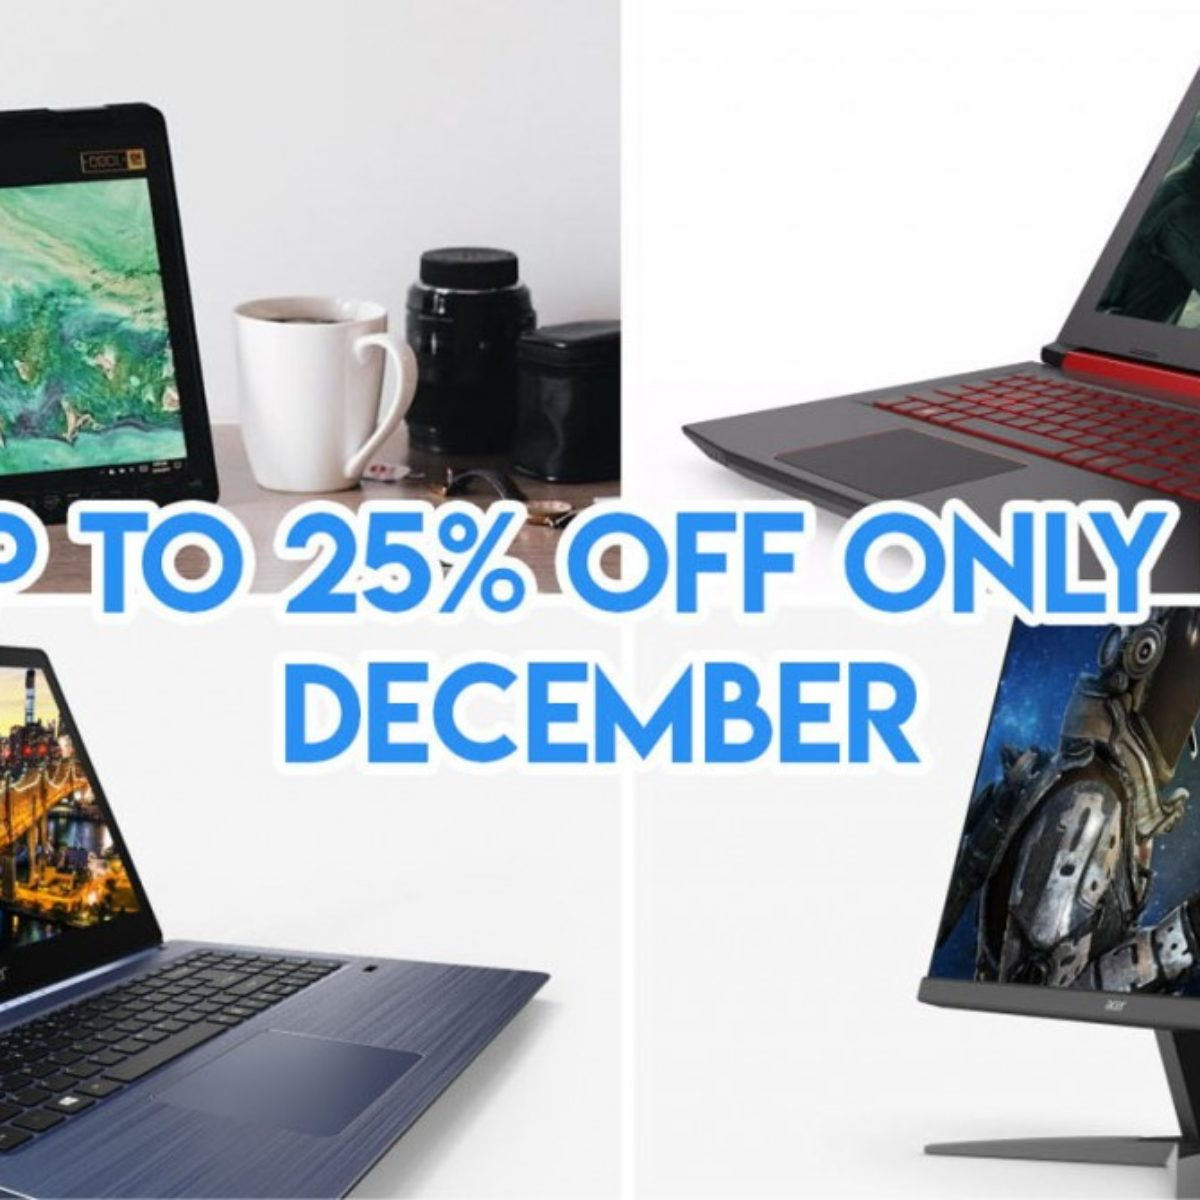 Acer S 12 12 Sale Has Laptop Deals From 12 14 Dec For Students Surviving Uni On A Budget